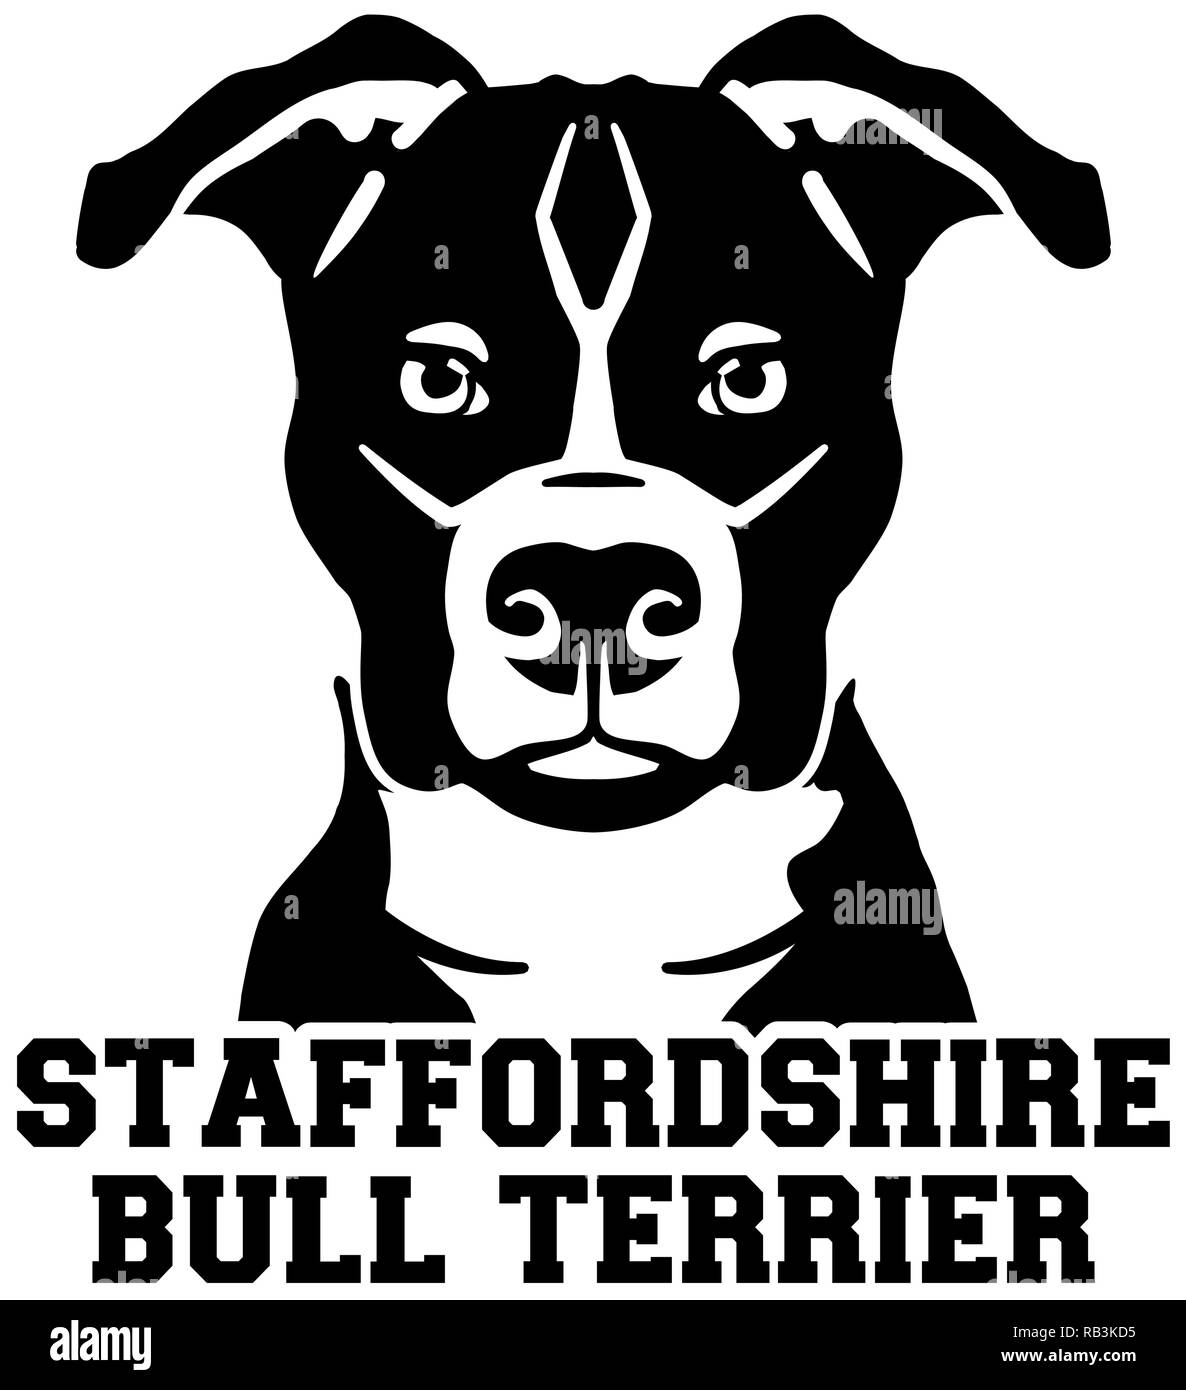 Staffordshire Bull Terrier head black with name - Stock Image